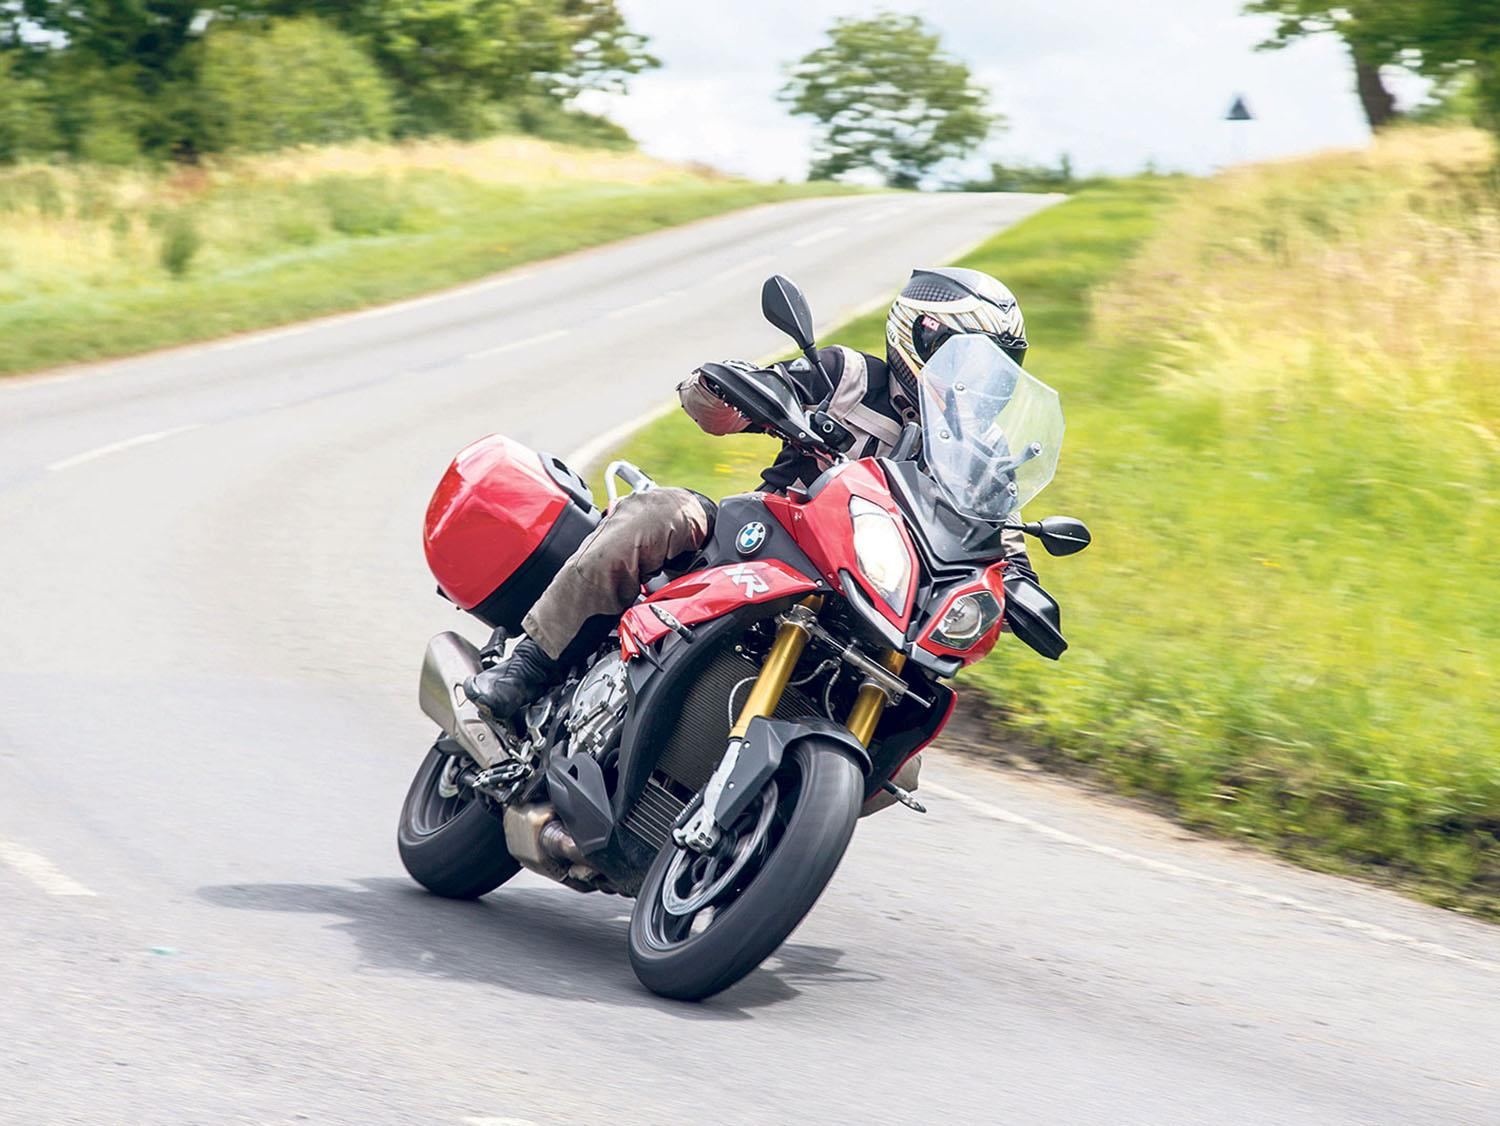 Cornering a motorbike with confidence